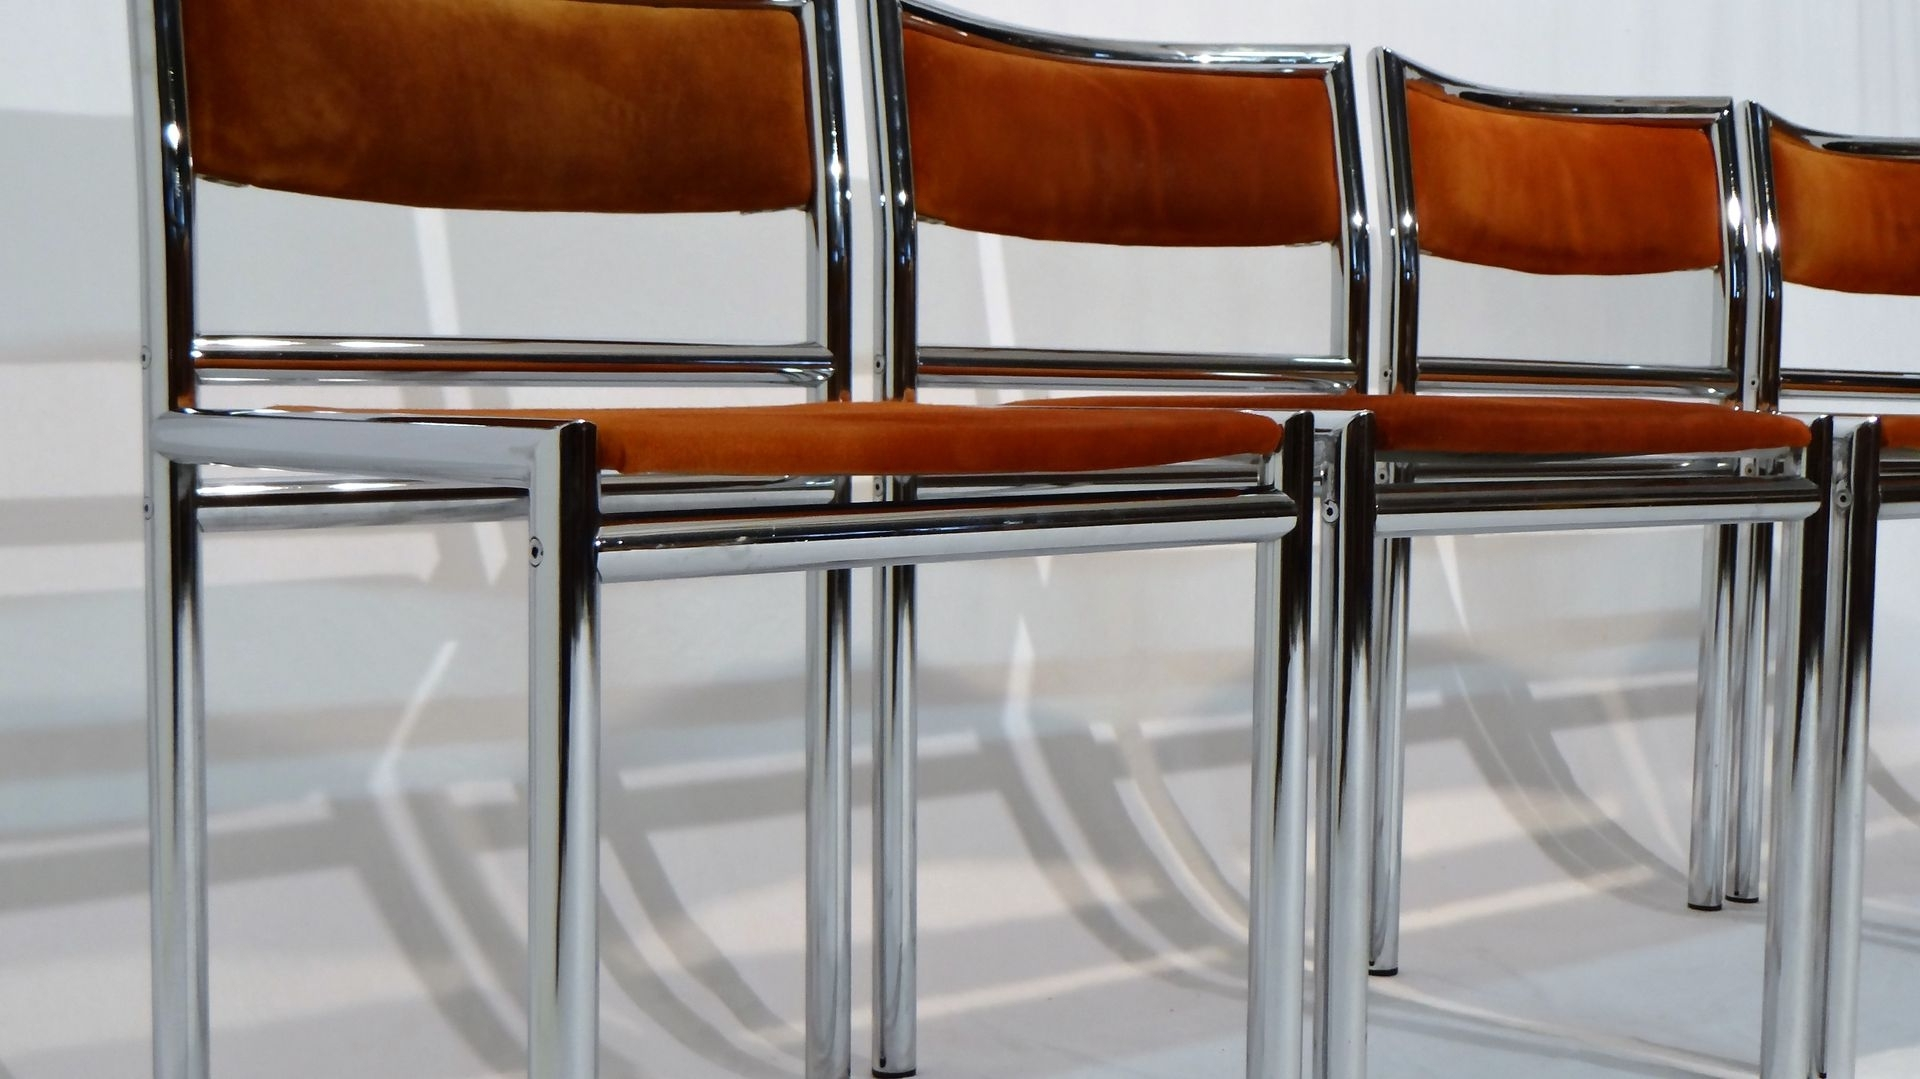 Mid Century Dining Chairs In Tubular Chrome And Leather, Set Of 4 Inside Famous Chrome Leather Dining Chairs (View 18 of 25)